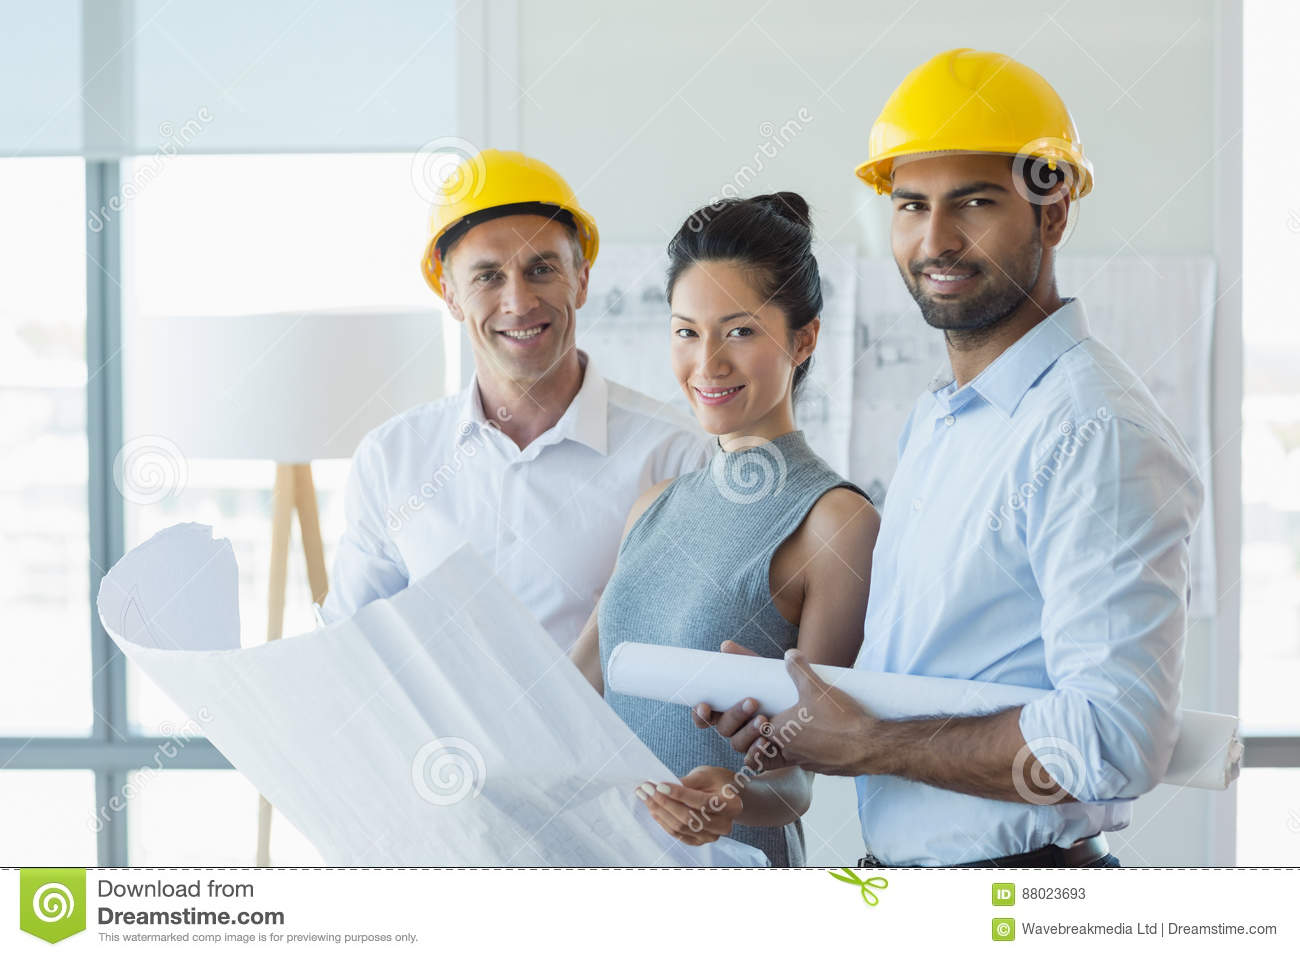 Smiling three architects standing in office with blueprint